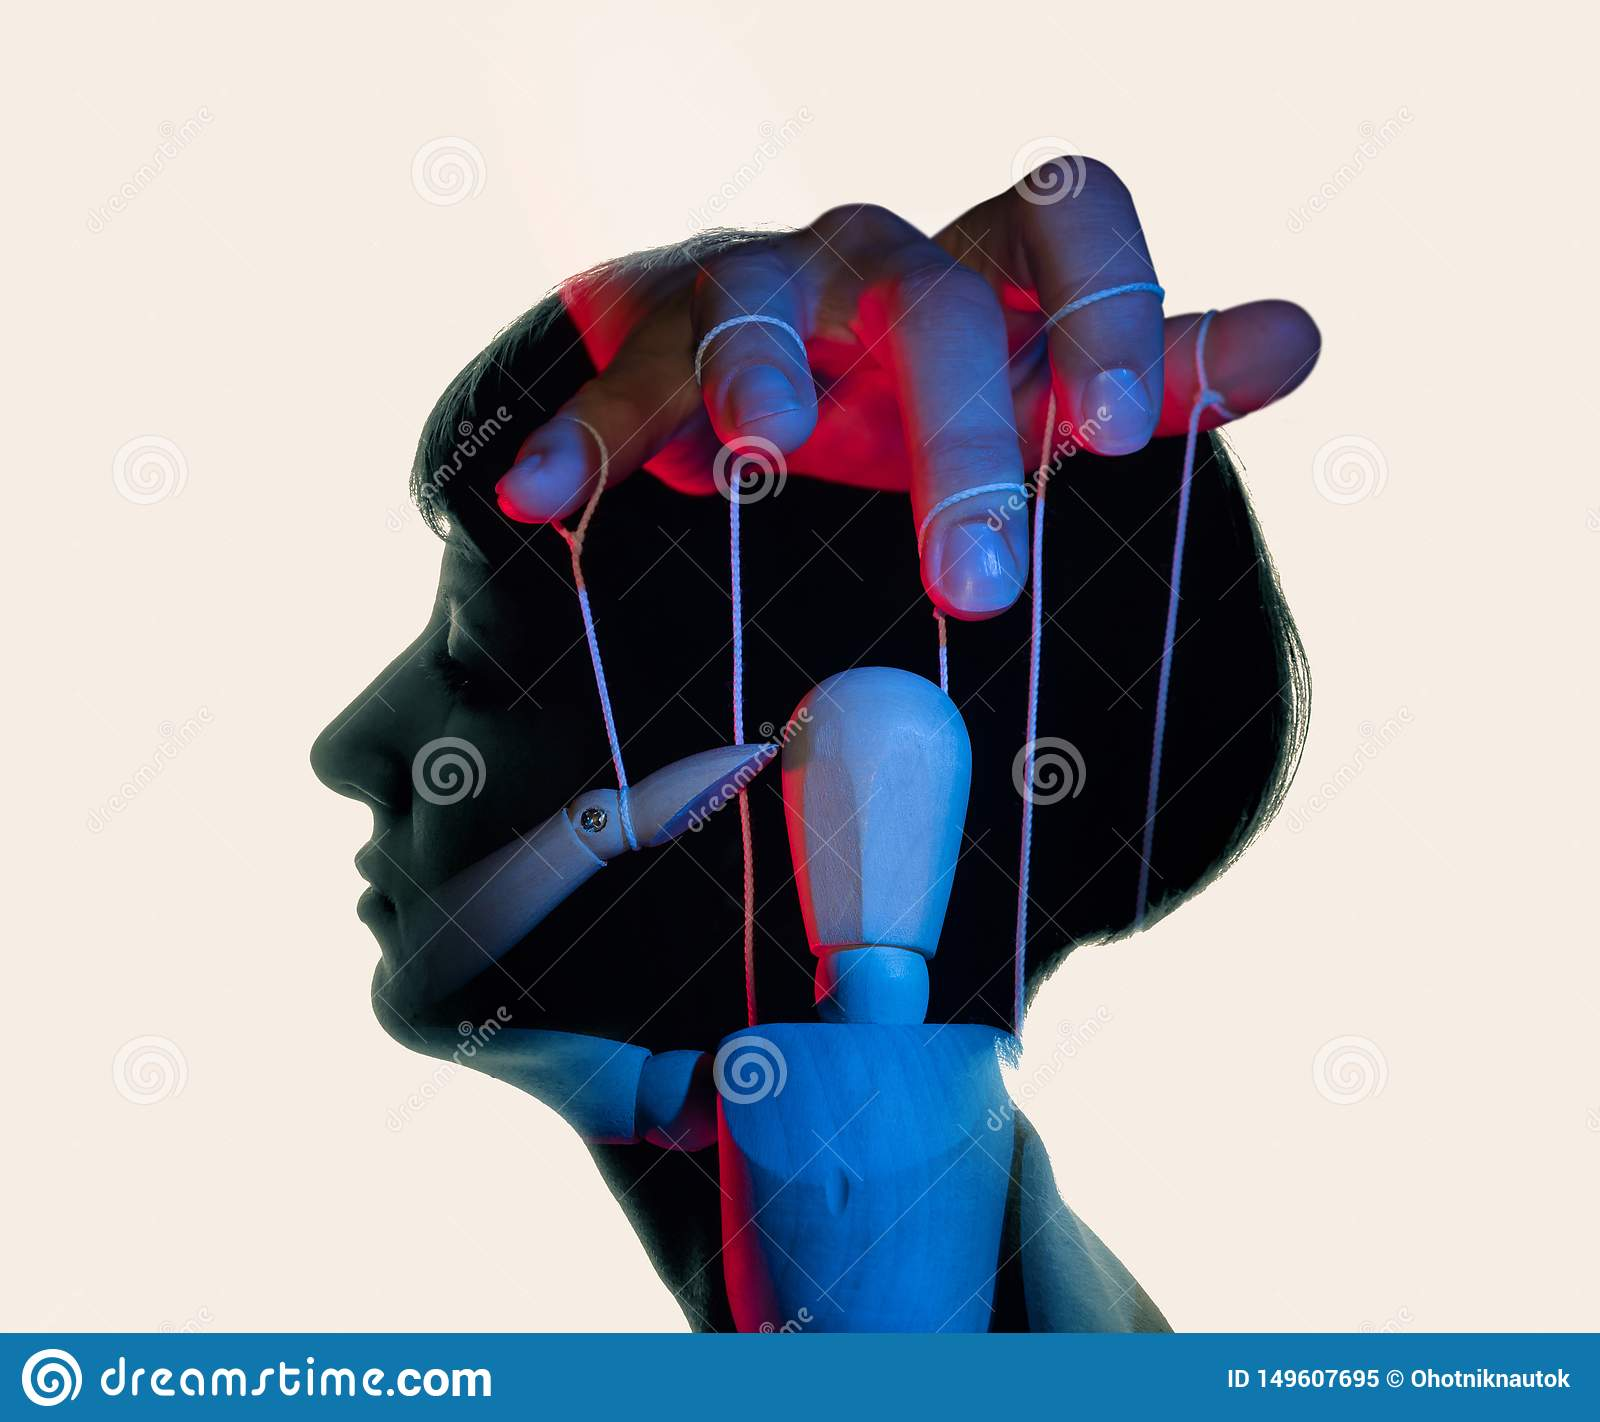 Concept of mind control. Image